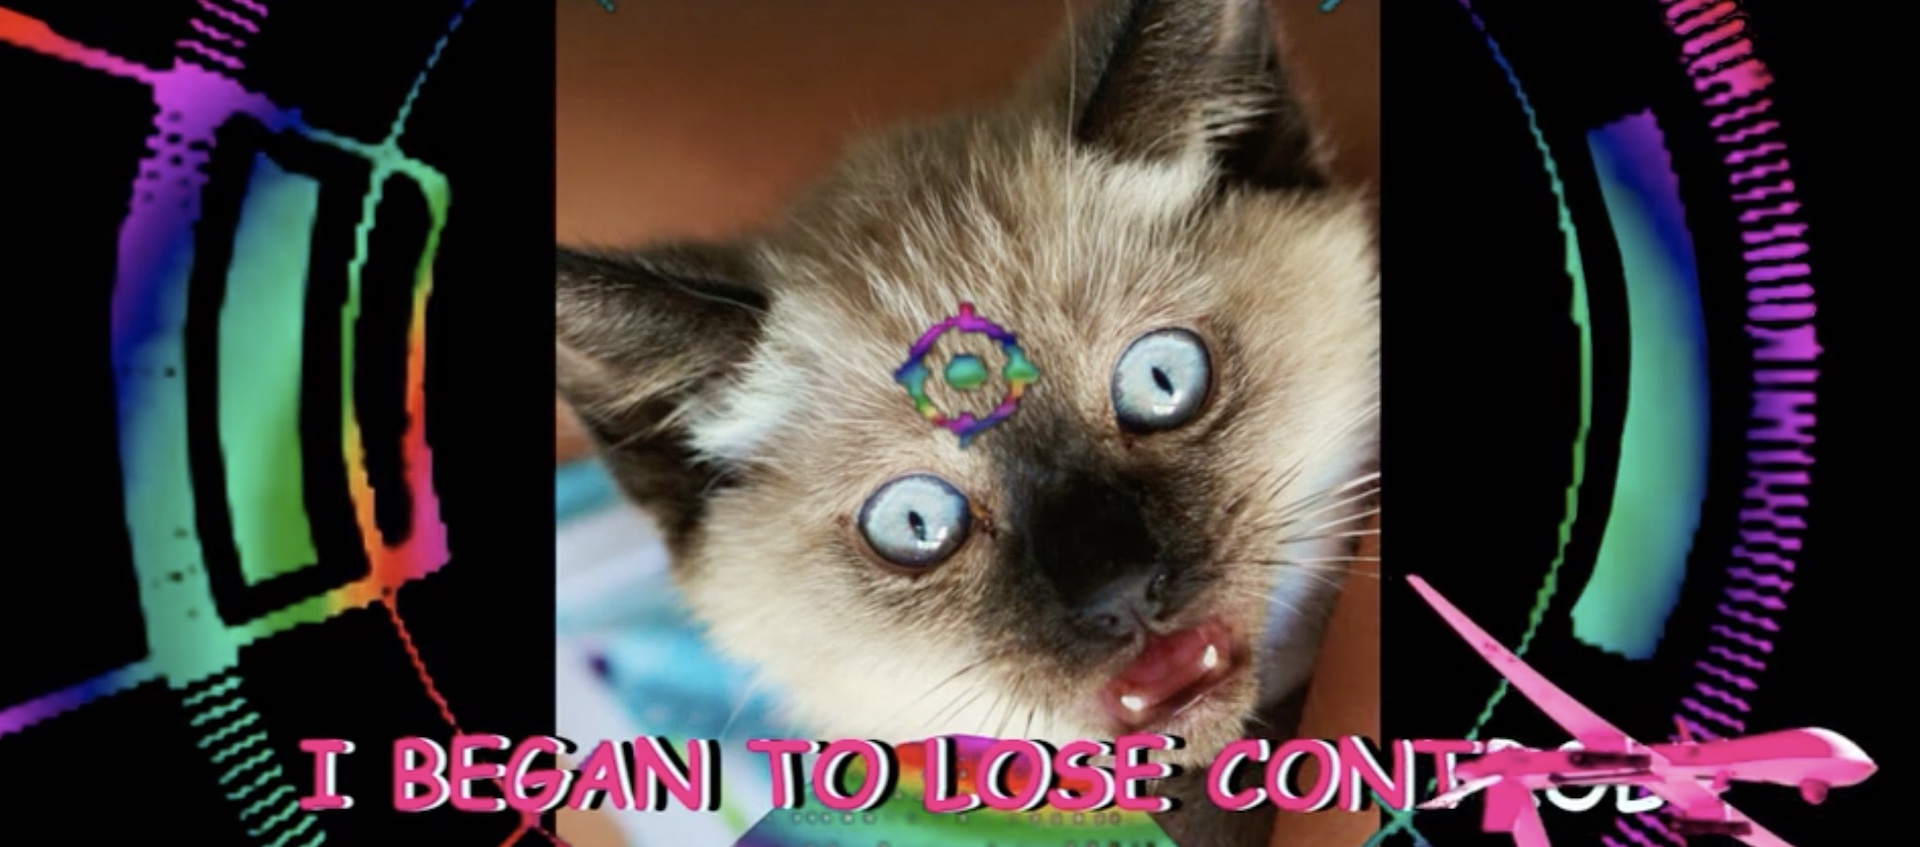 "An altered image of a cat with wide eyes about karaoke lyrics that read ""I began to lose control"" from a work by the art collective Chicks on Speed"